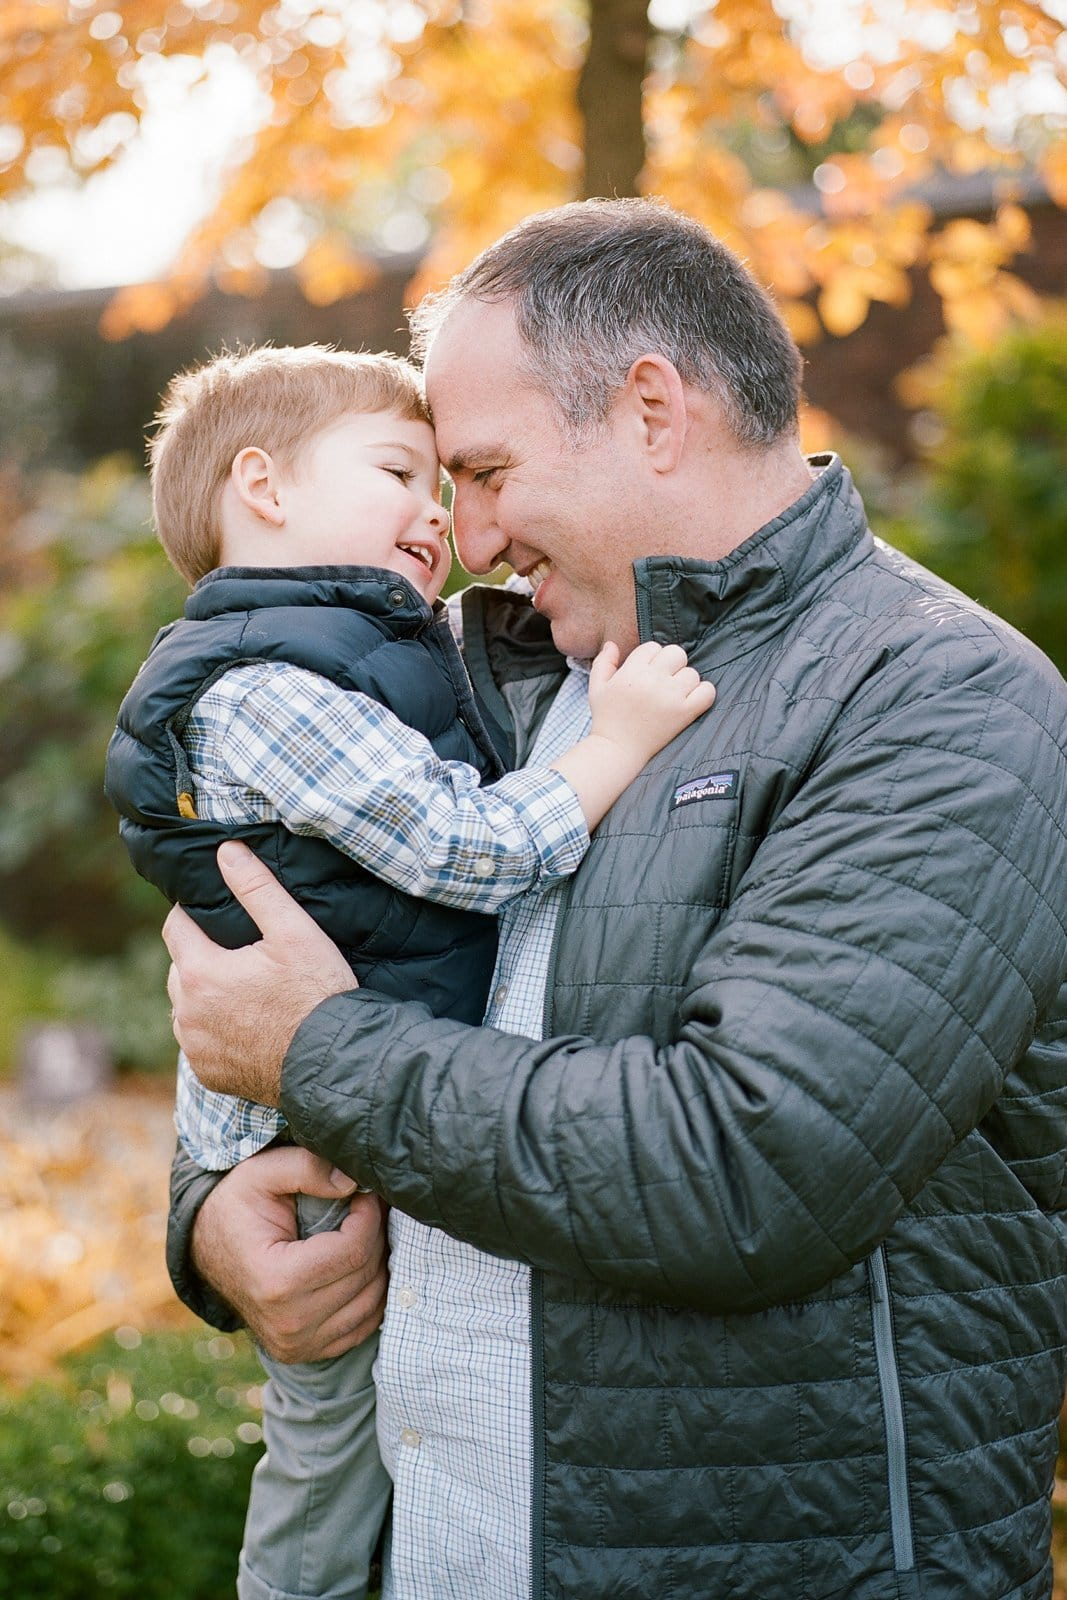 Dad embracing his son and touching foreheads during photos